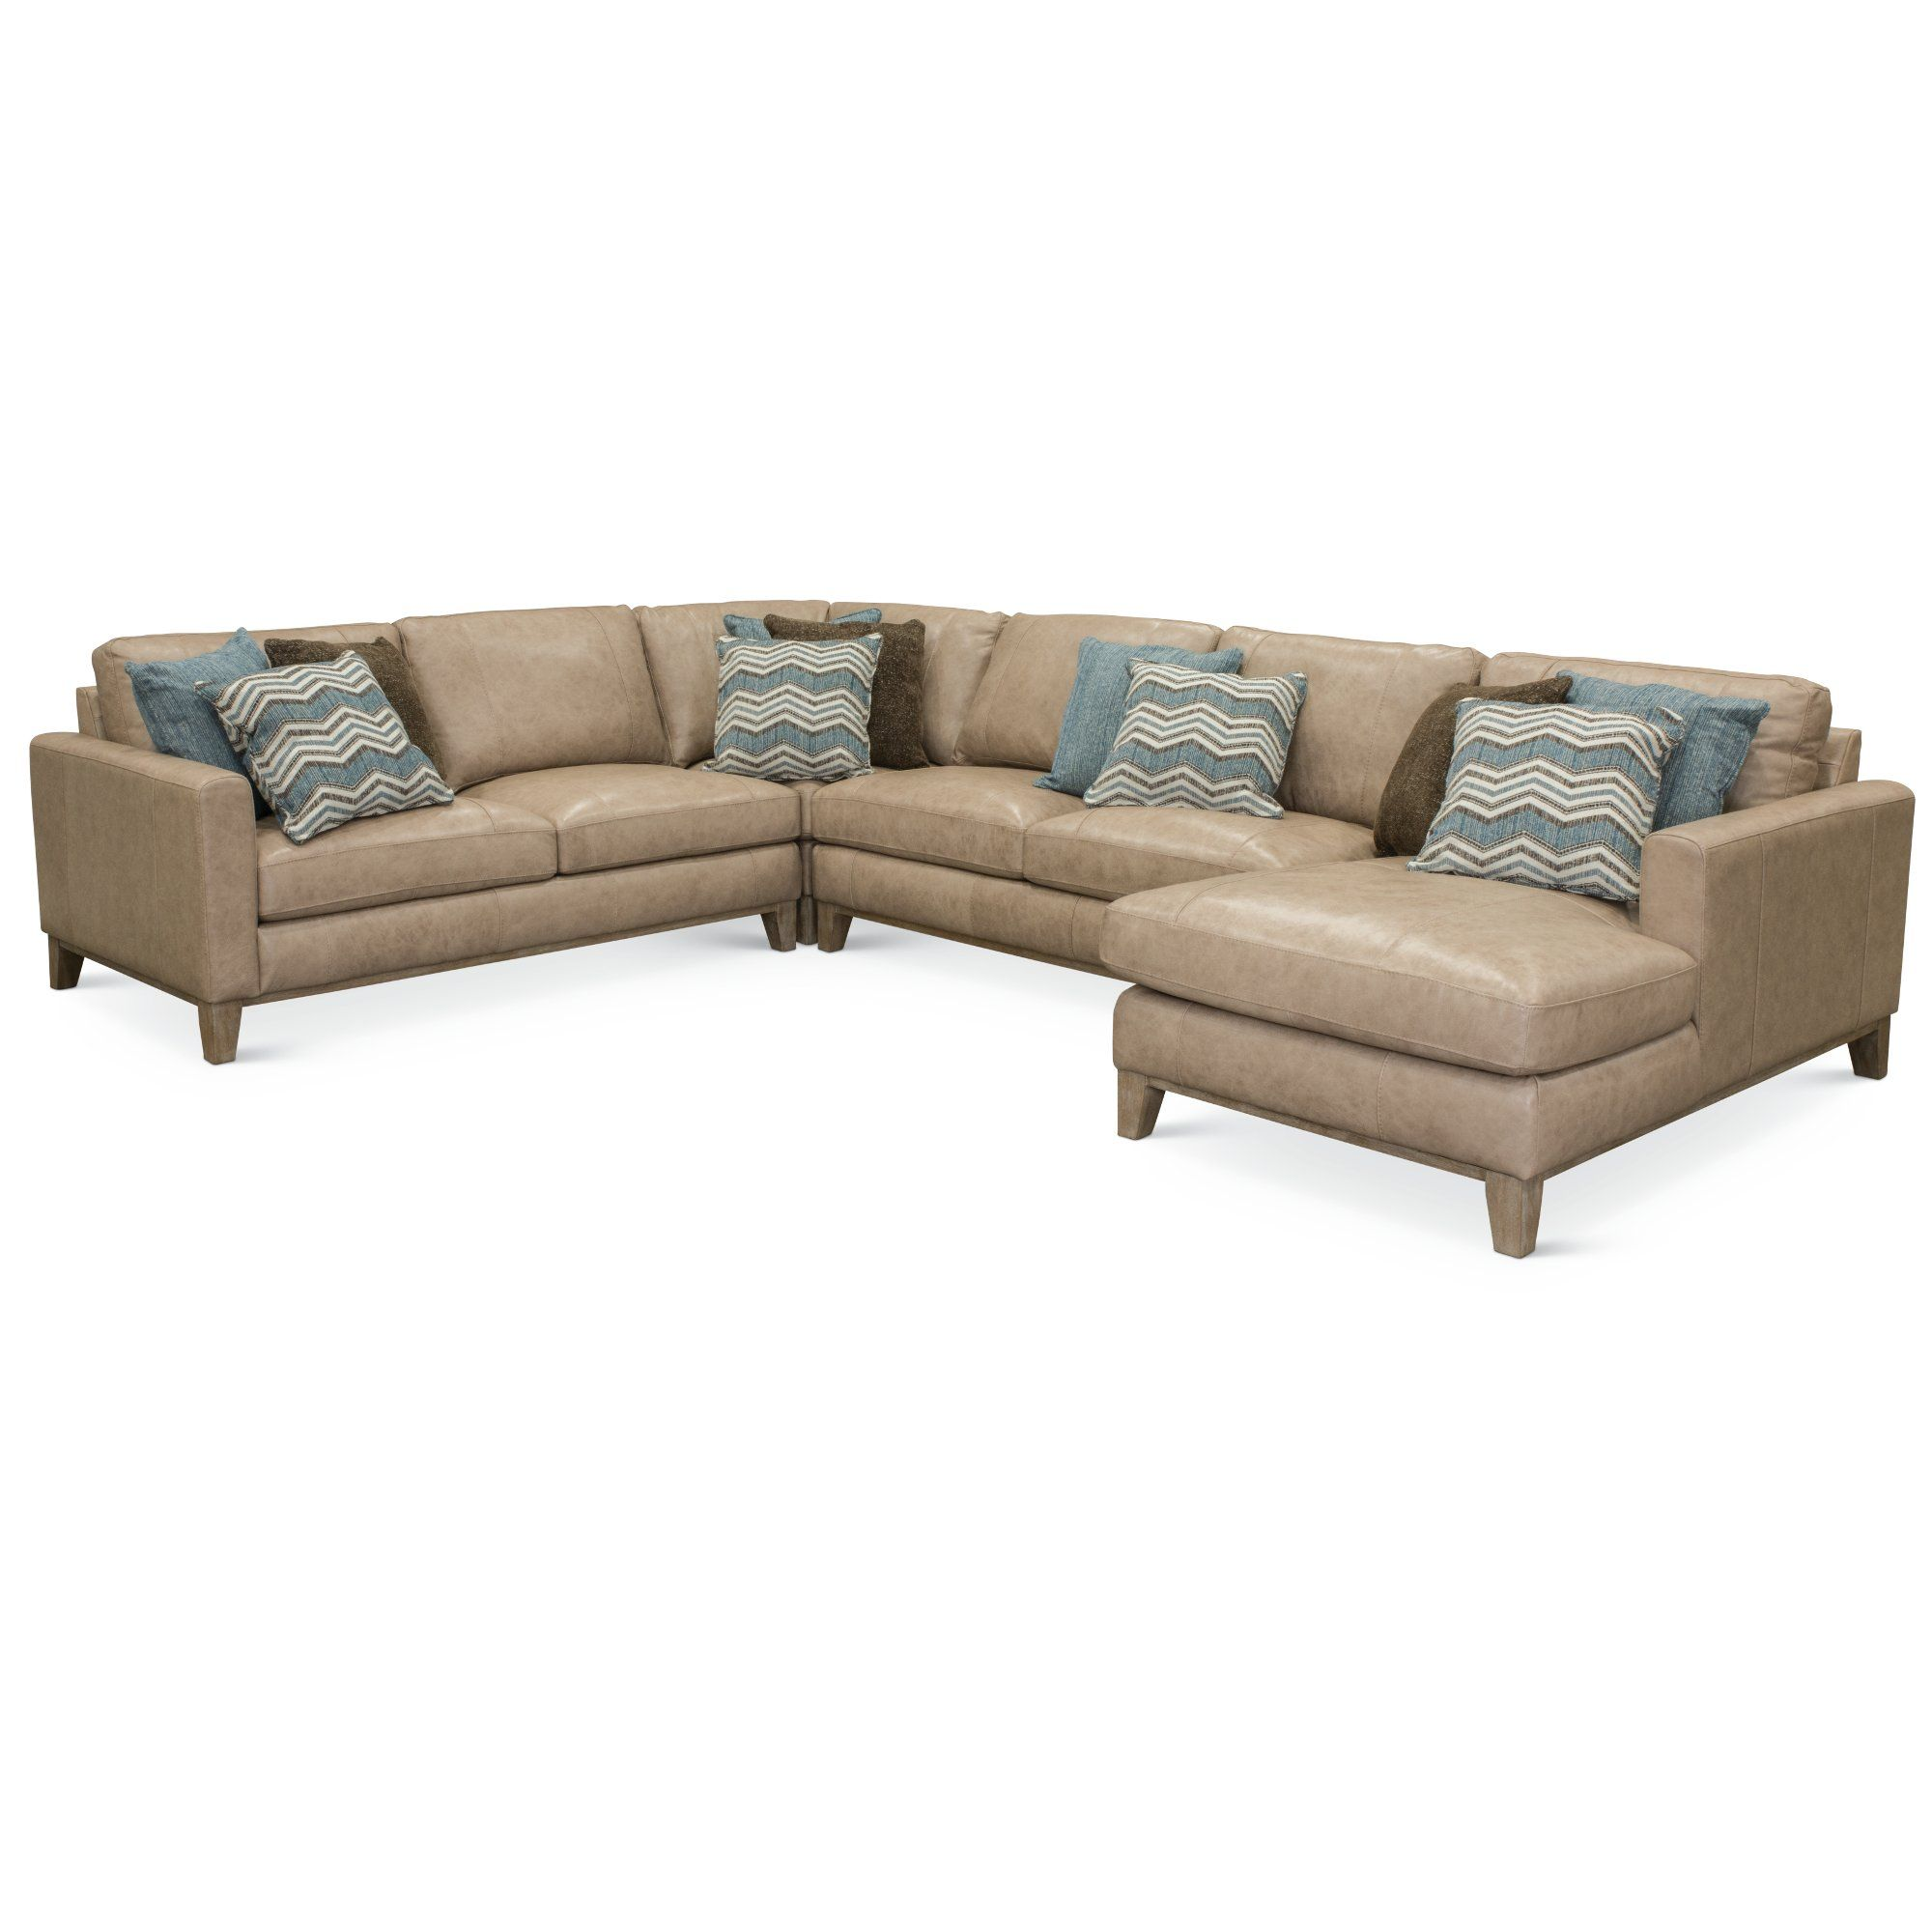 Sand Leather 4 Piece Sectional Sofa With Raf Chaise Mutual This Could Work Upstairs Leather Sectional Brown Leather Sectionals Leather Sectional Sofas